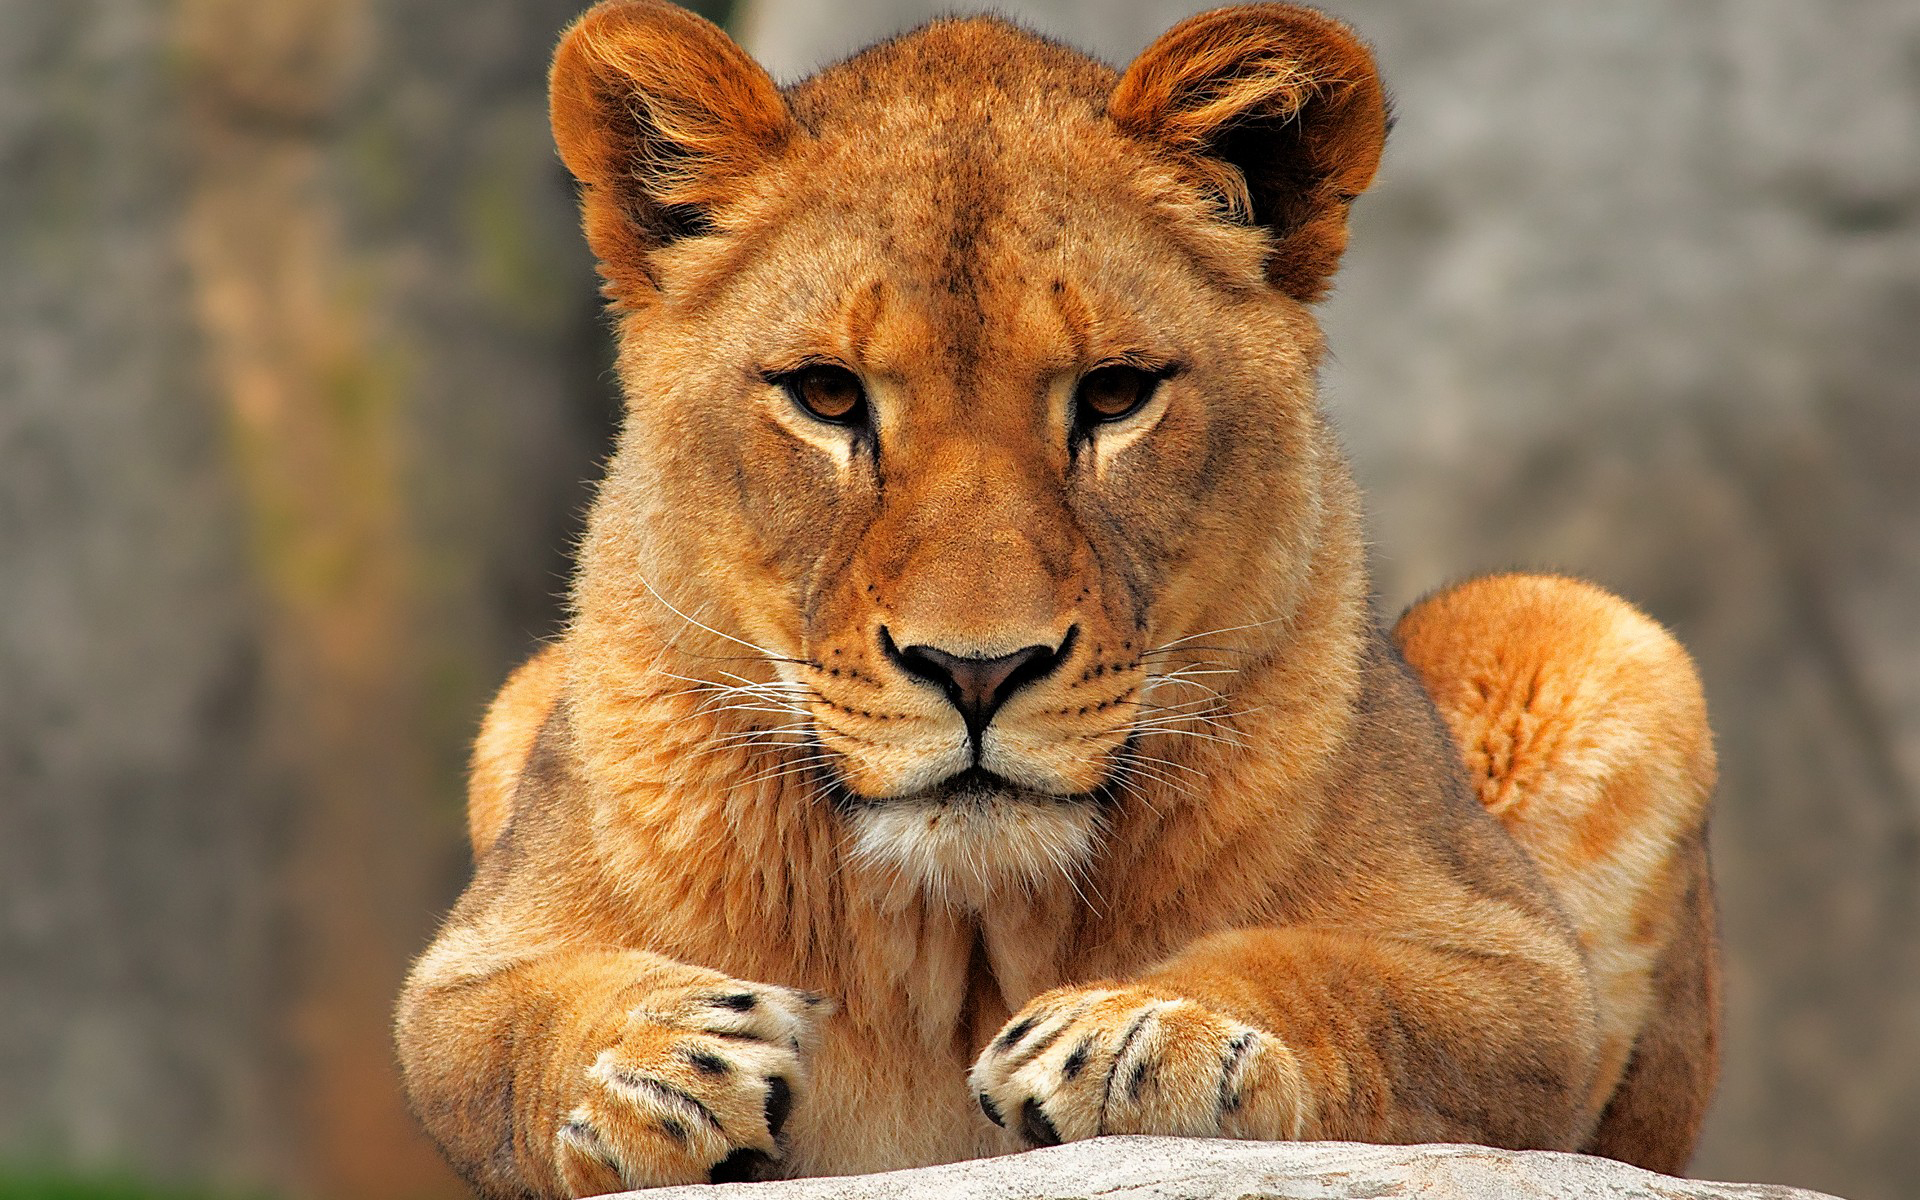 Female-lion-9.jpg